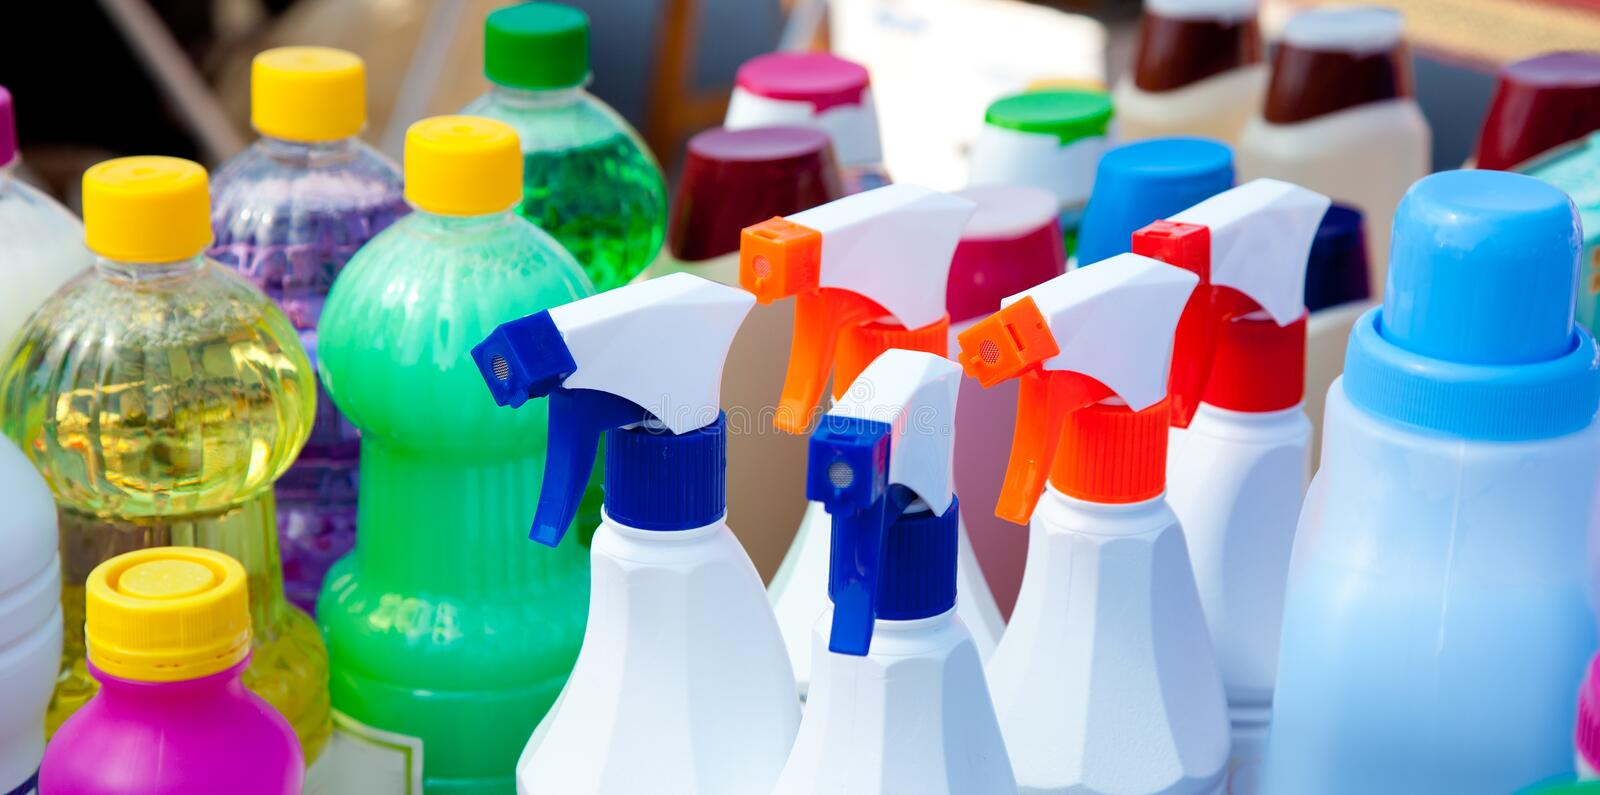 Chemical products for cleaning chores. Domestic chemical products for cleaning house chores stock image